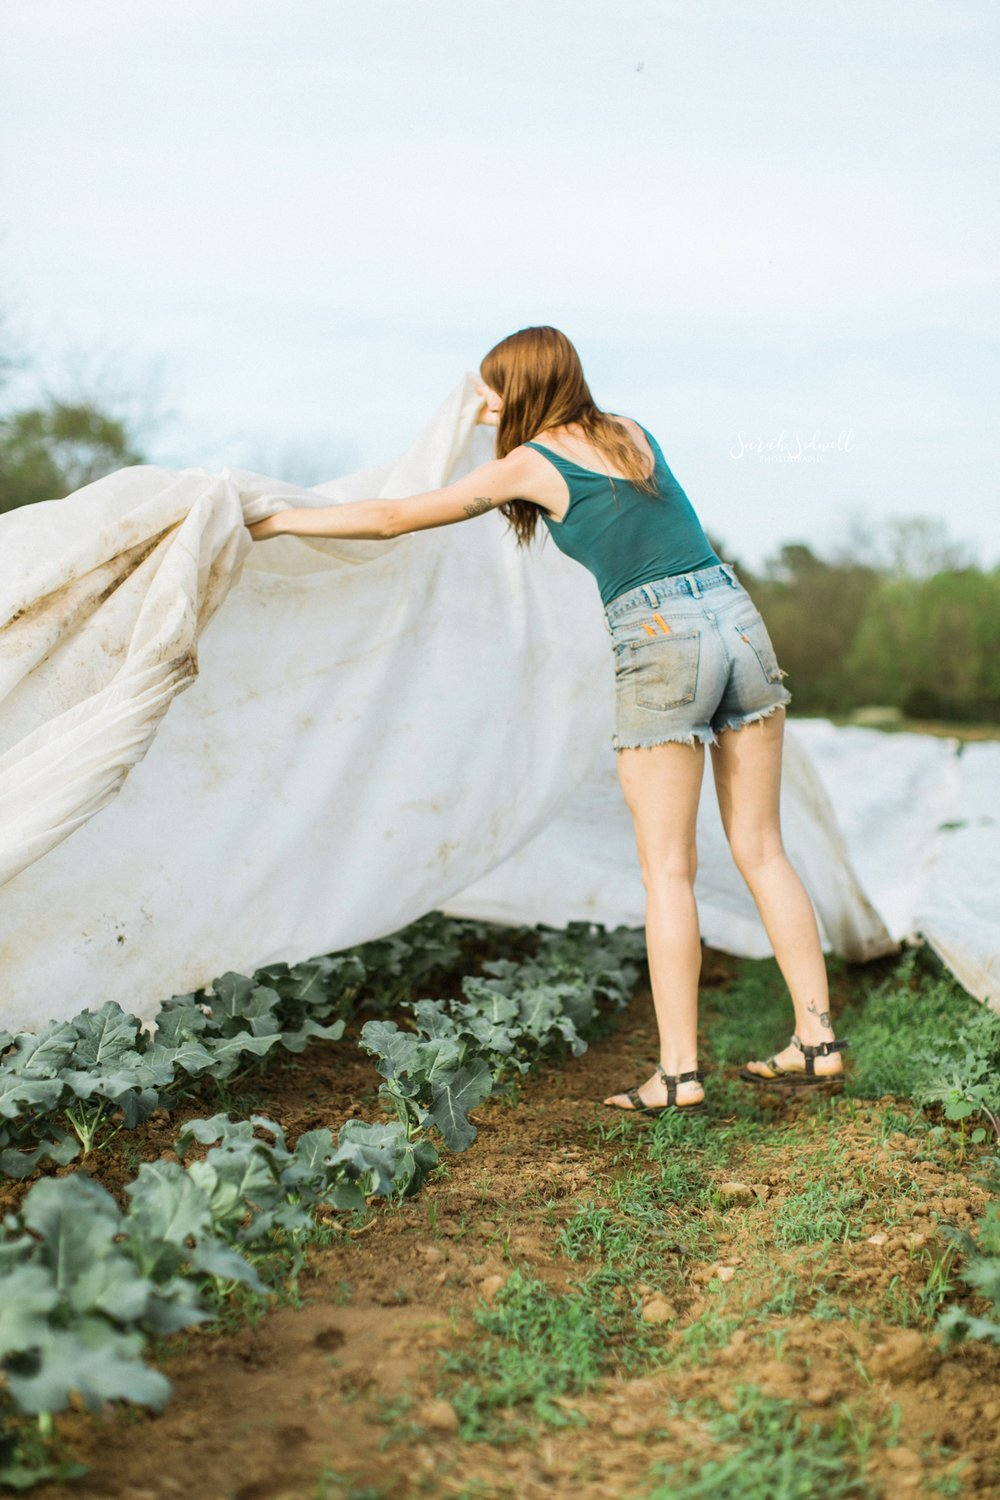 A woman covers a garden with a sheet.